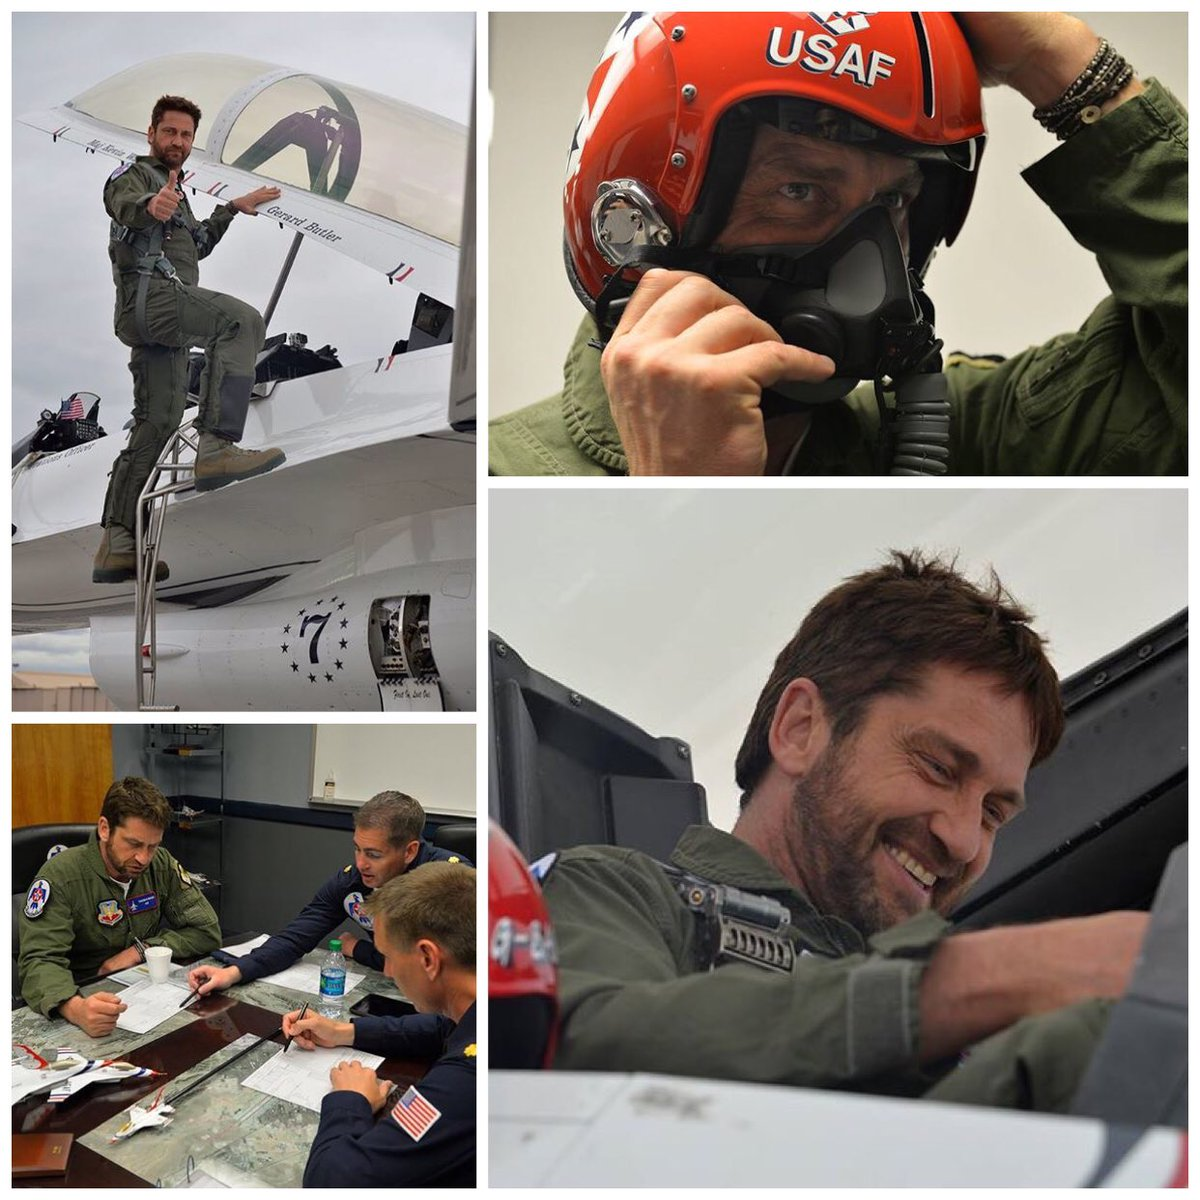 We had the pleasure of flying Gerard Butler today. He pulled 9.3G's & experienced the #afthunderbirds air show demo. https://t.co/FdJLbWcgyq